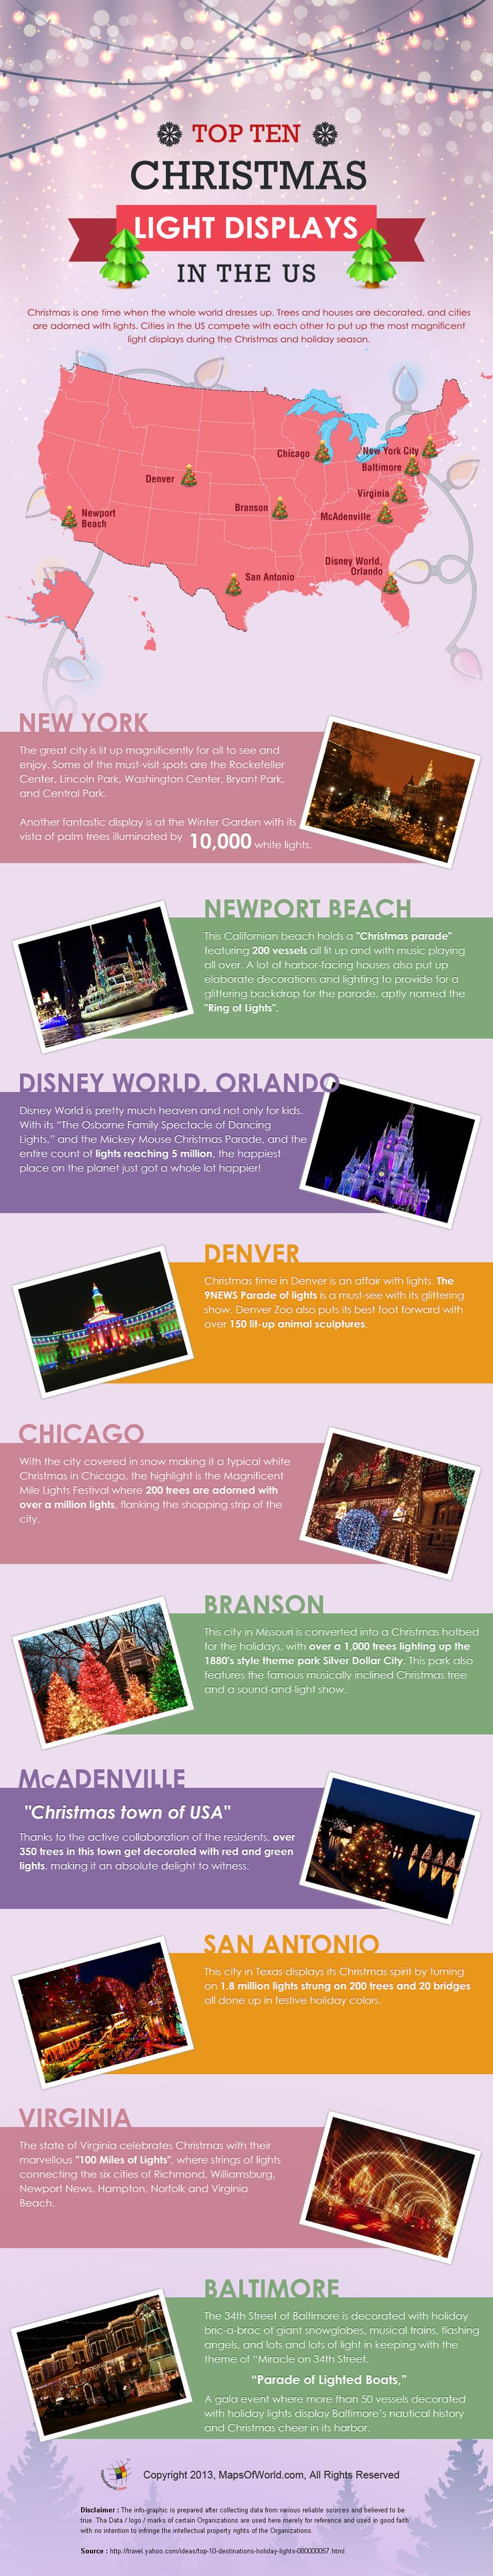 Cities that are known to dazzle visitors with their magnificent Christmas light displays in the USA - An Infographic!